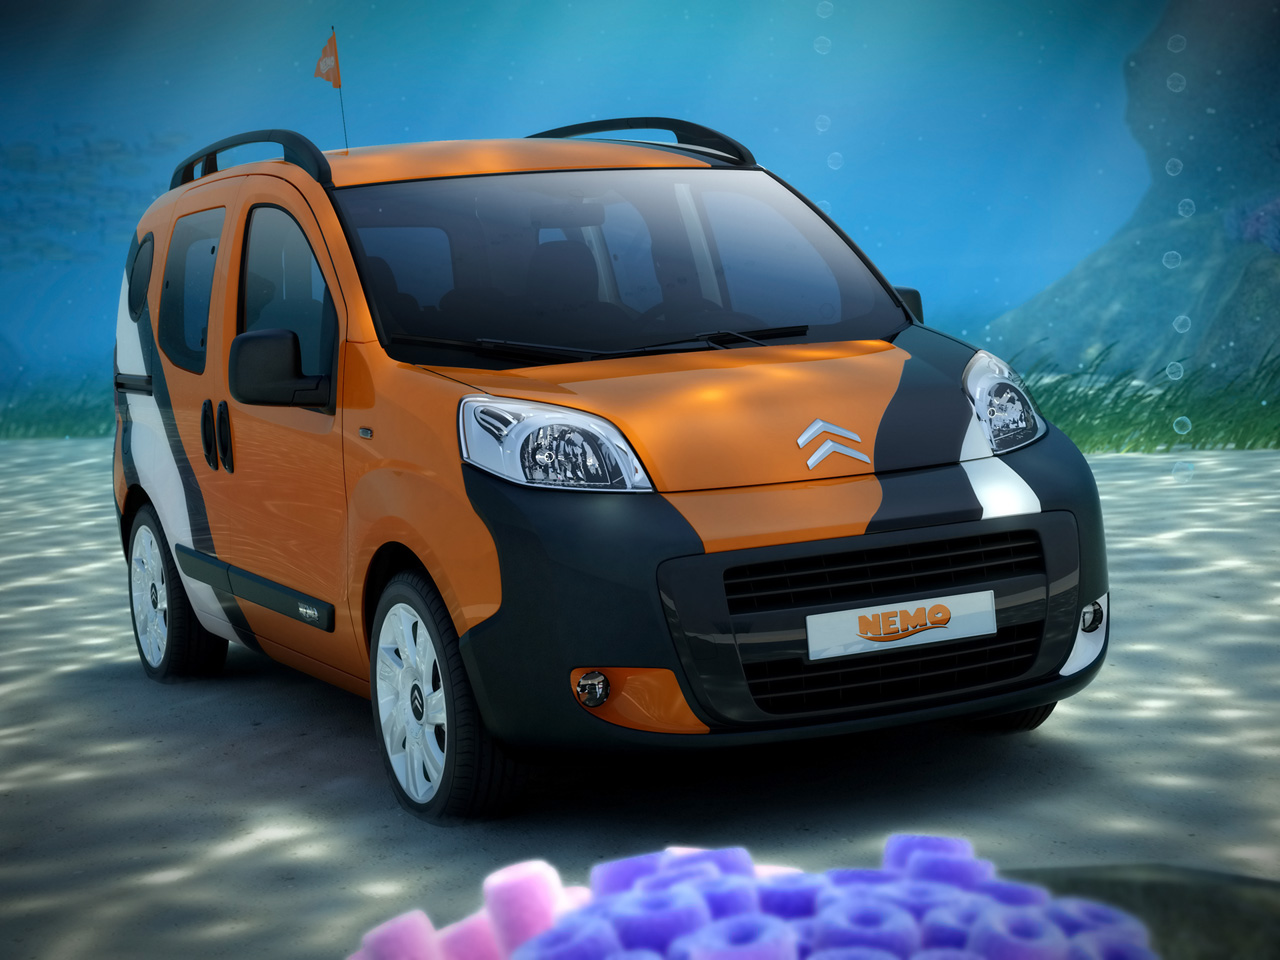 Citroen Nemo photo 10